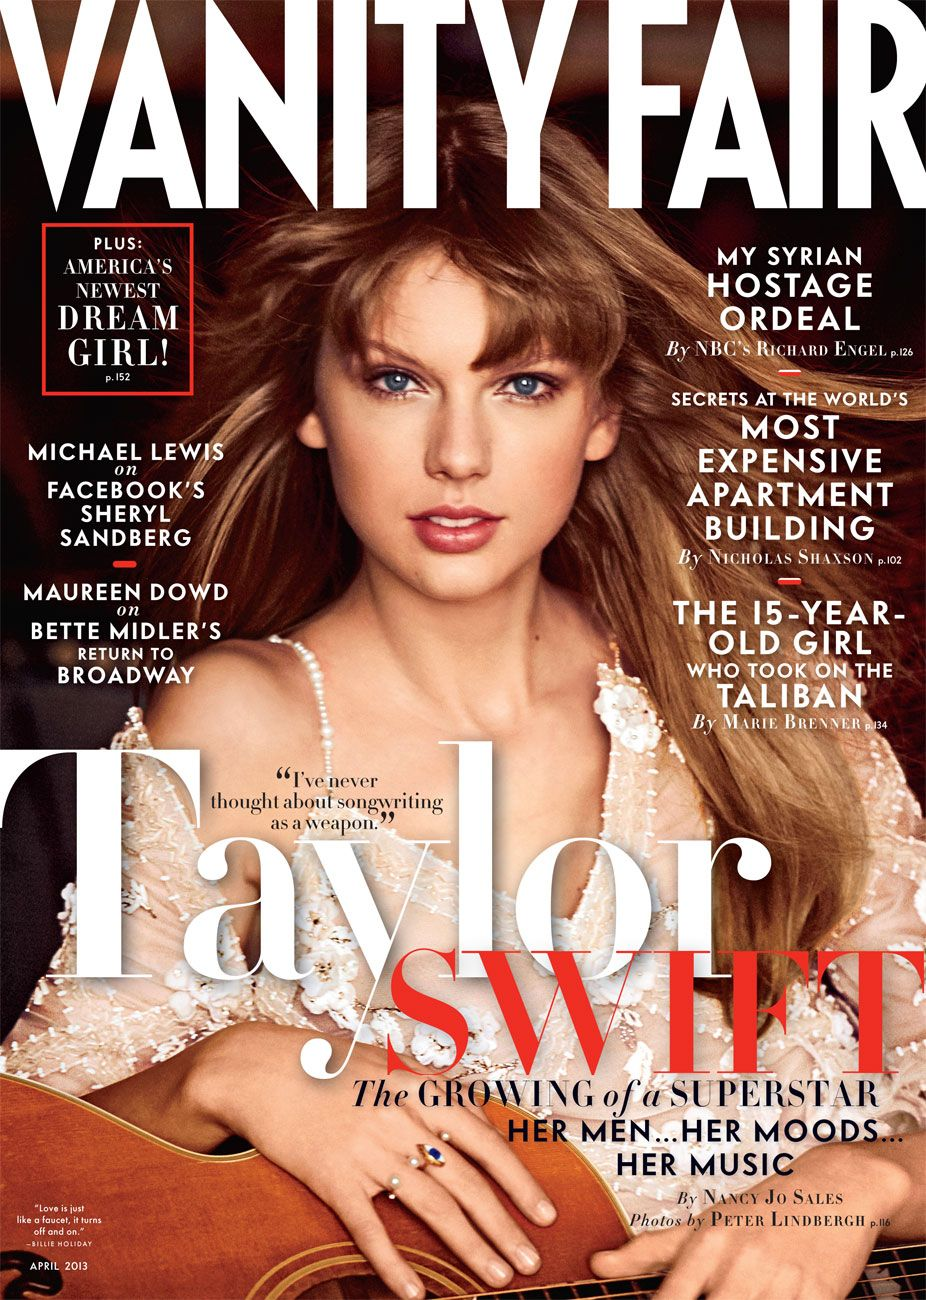 Cover Preview: Taylor Swift Fights Back About Her Love Life, The Hyannis  Port Houseu2014and Has Words For Tina Fey And Amy Poehler